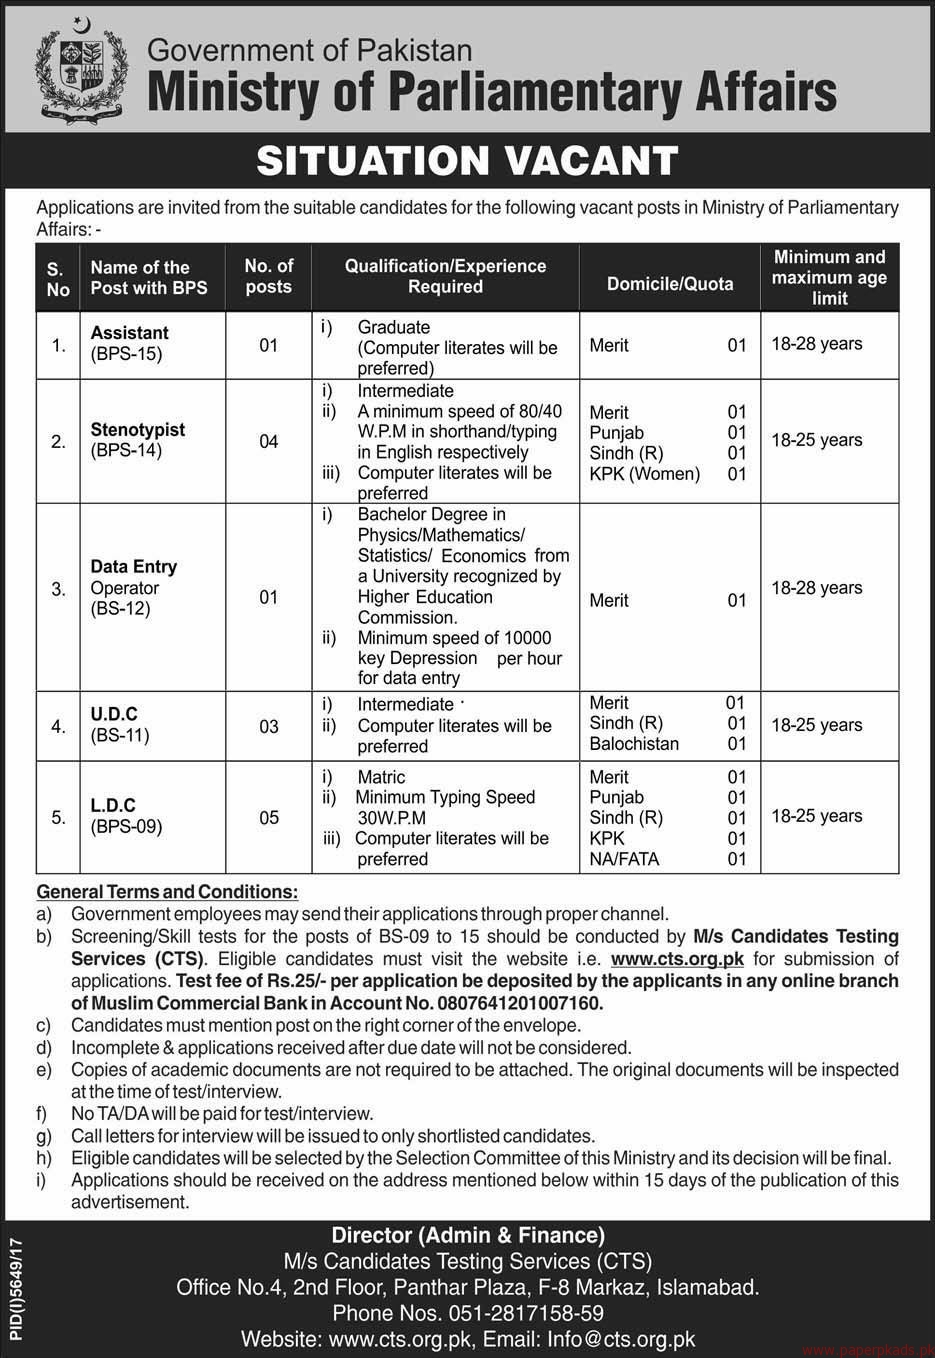 Government of Pakistan - Ministry of Parliamentary Affairs Jobs 2018 Latest